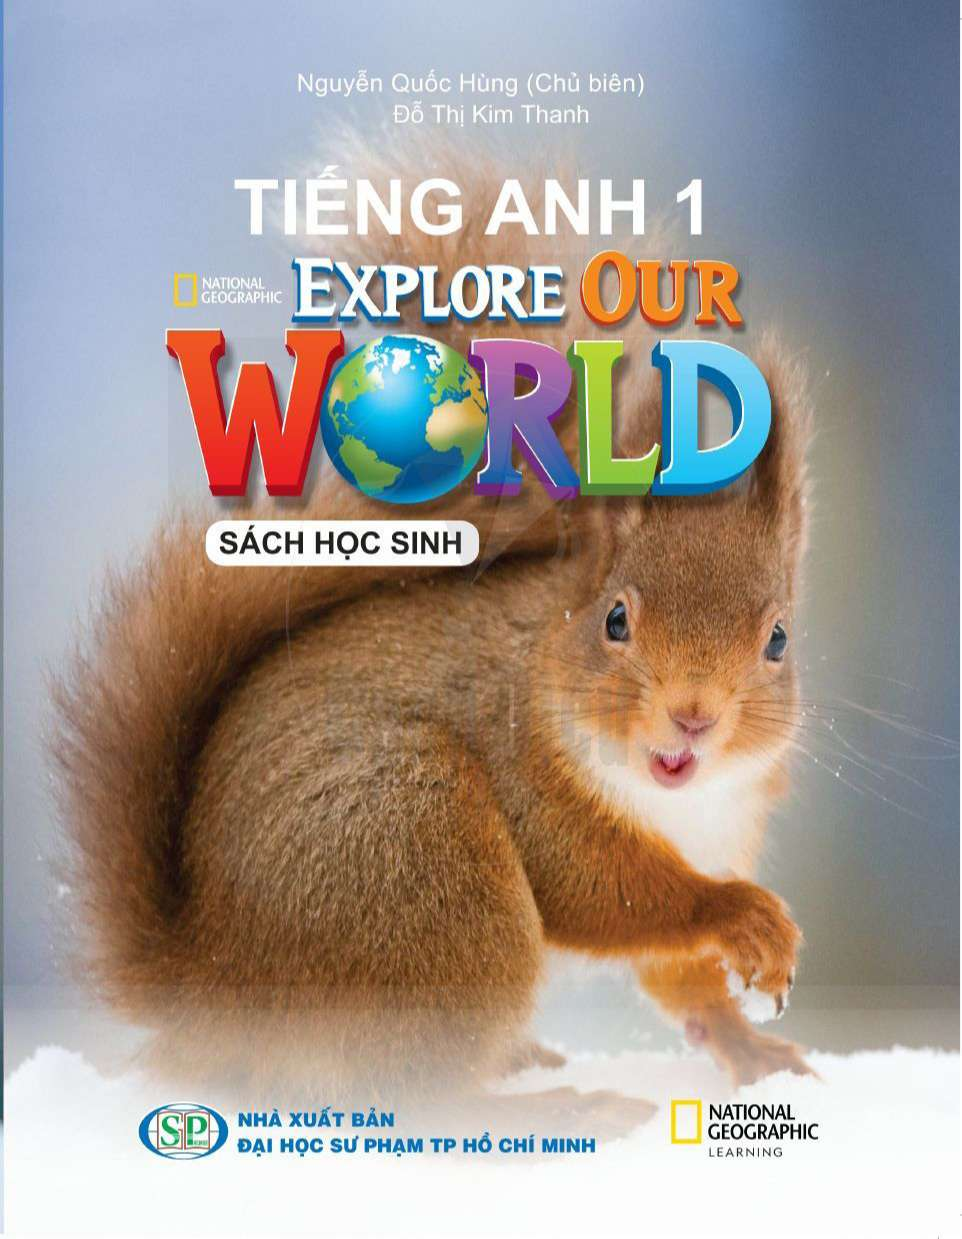 canh-dieu-tieng-anh-1-explore-our-word